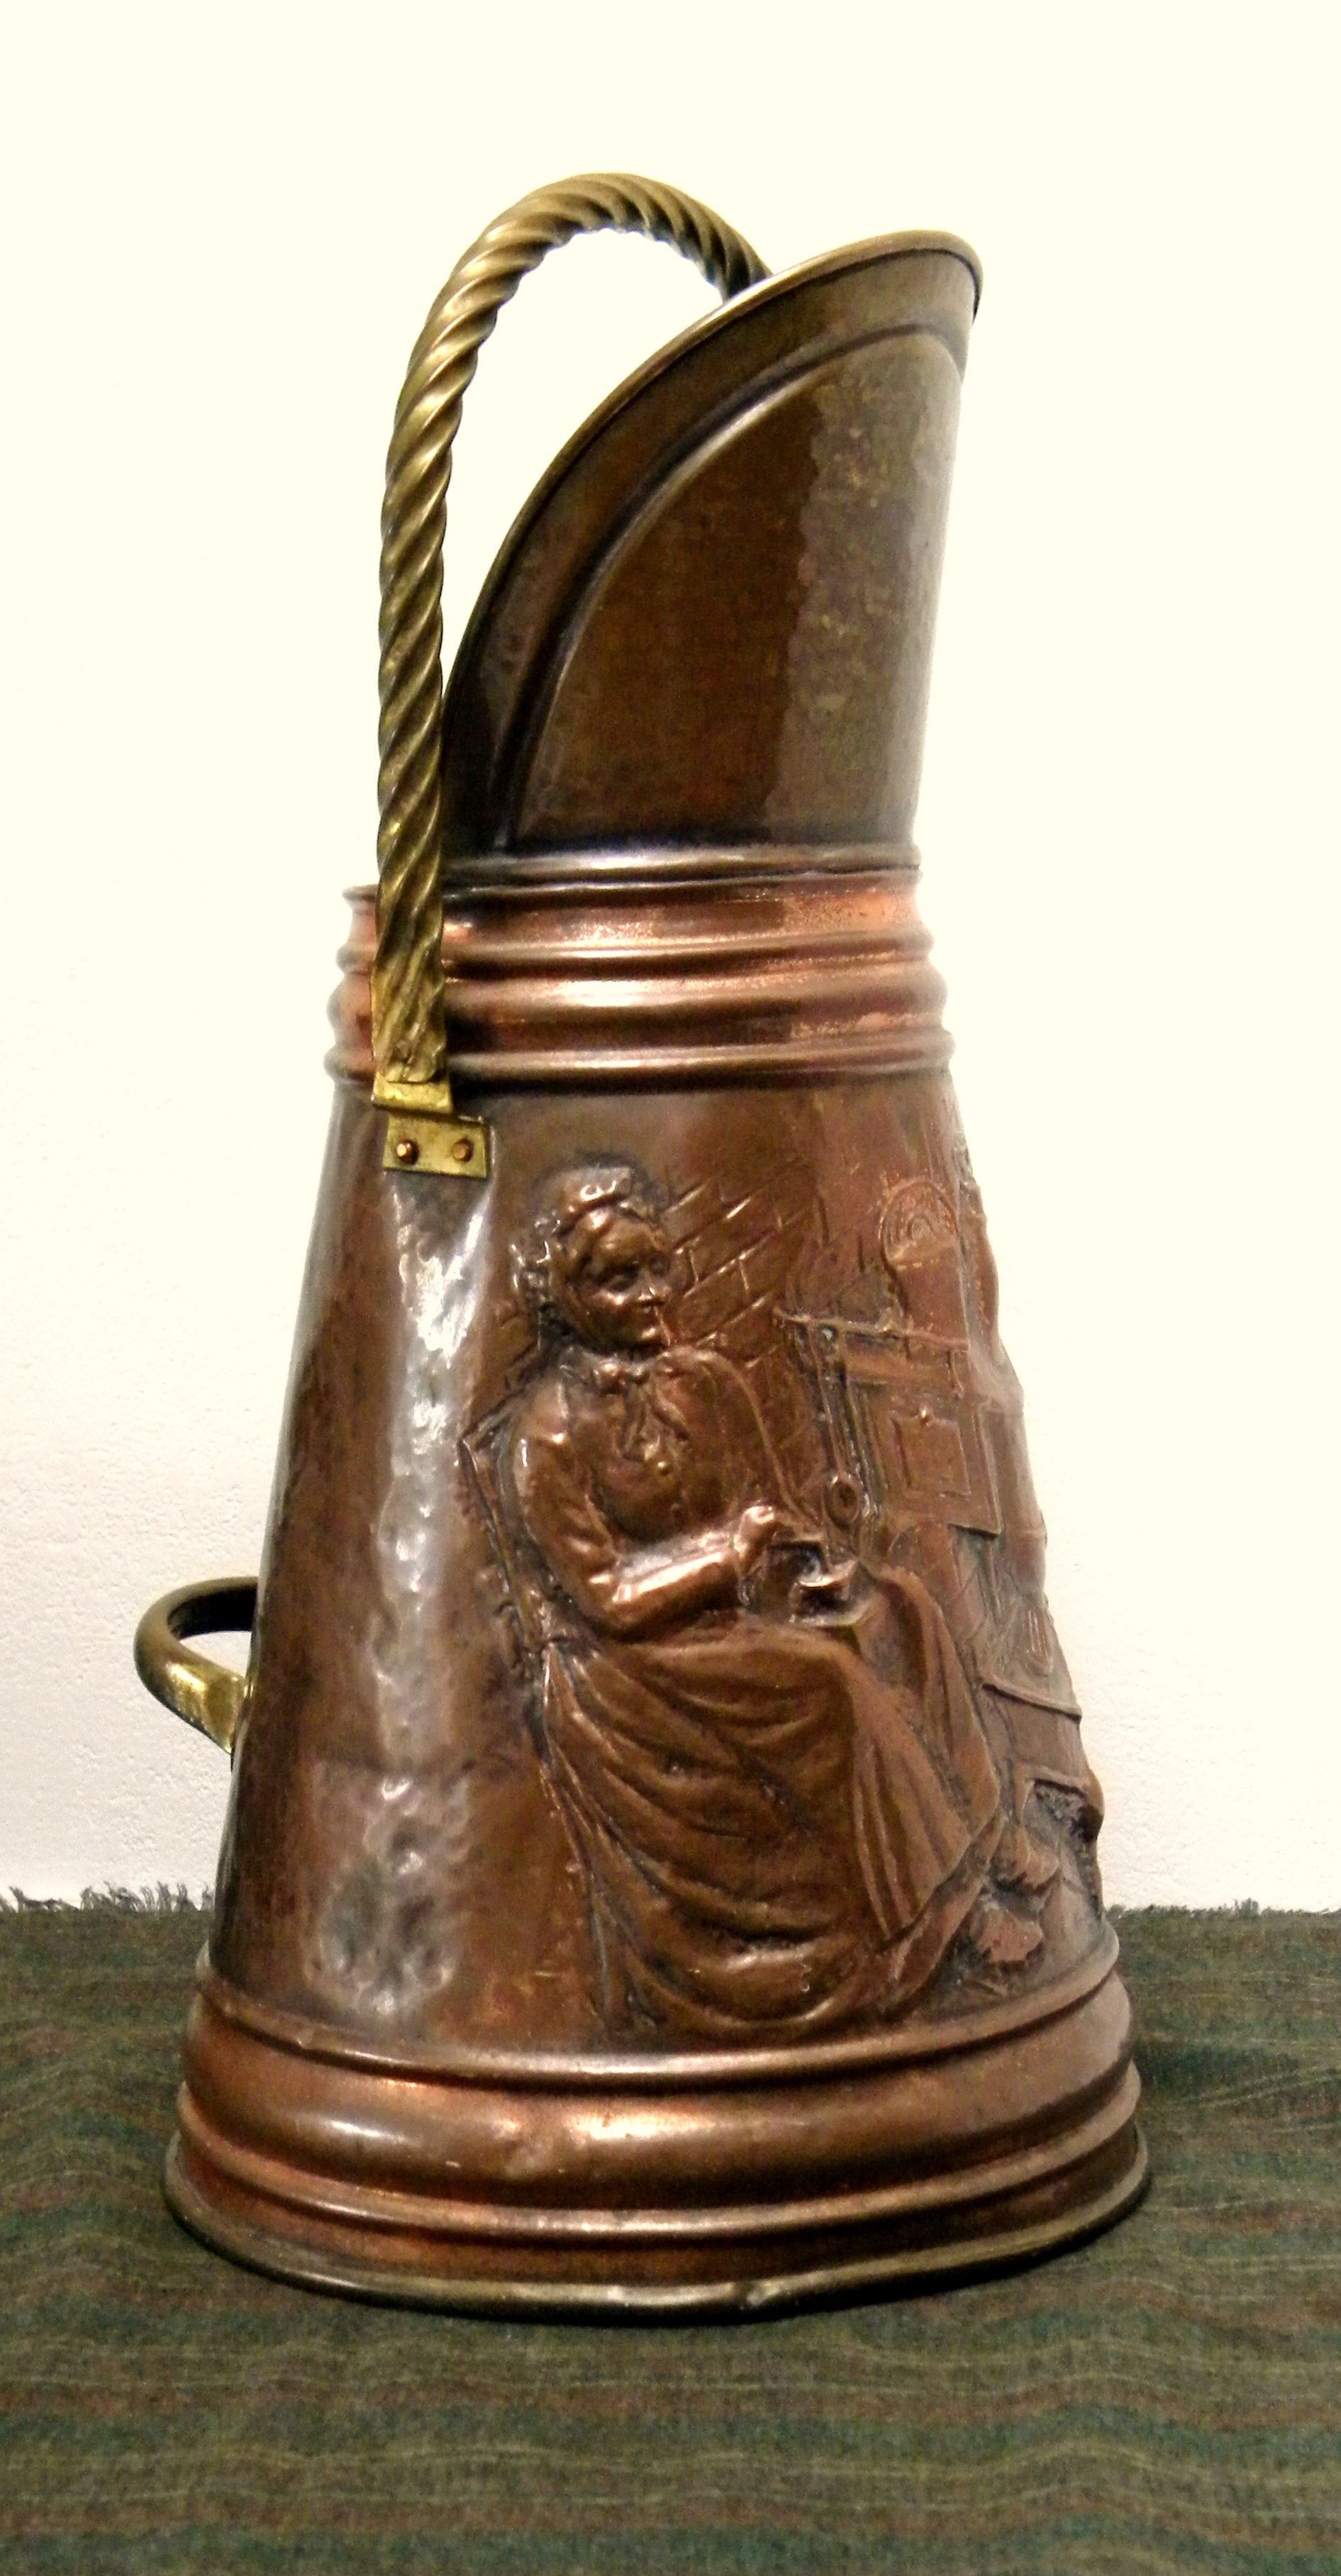 This Is A Wonderful Coal Scuttle,Hand Made In Hammered Copper,